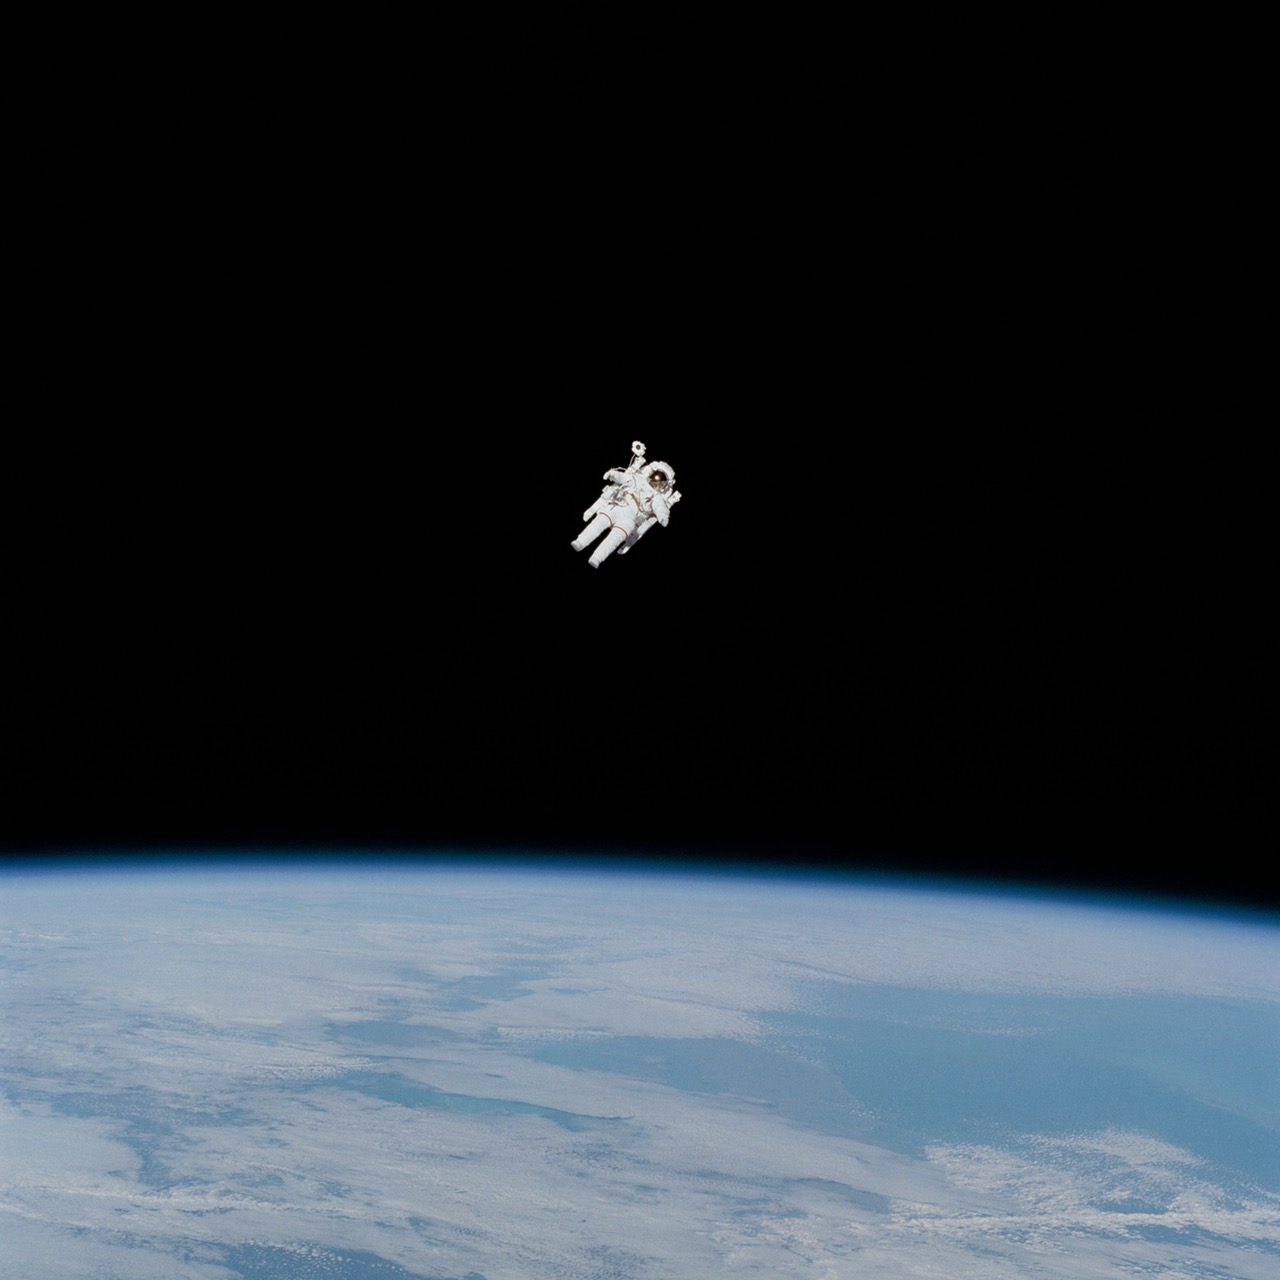 Image, Astronaut floating above space.